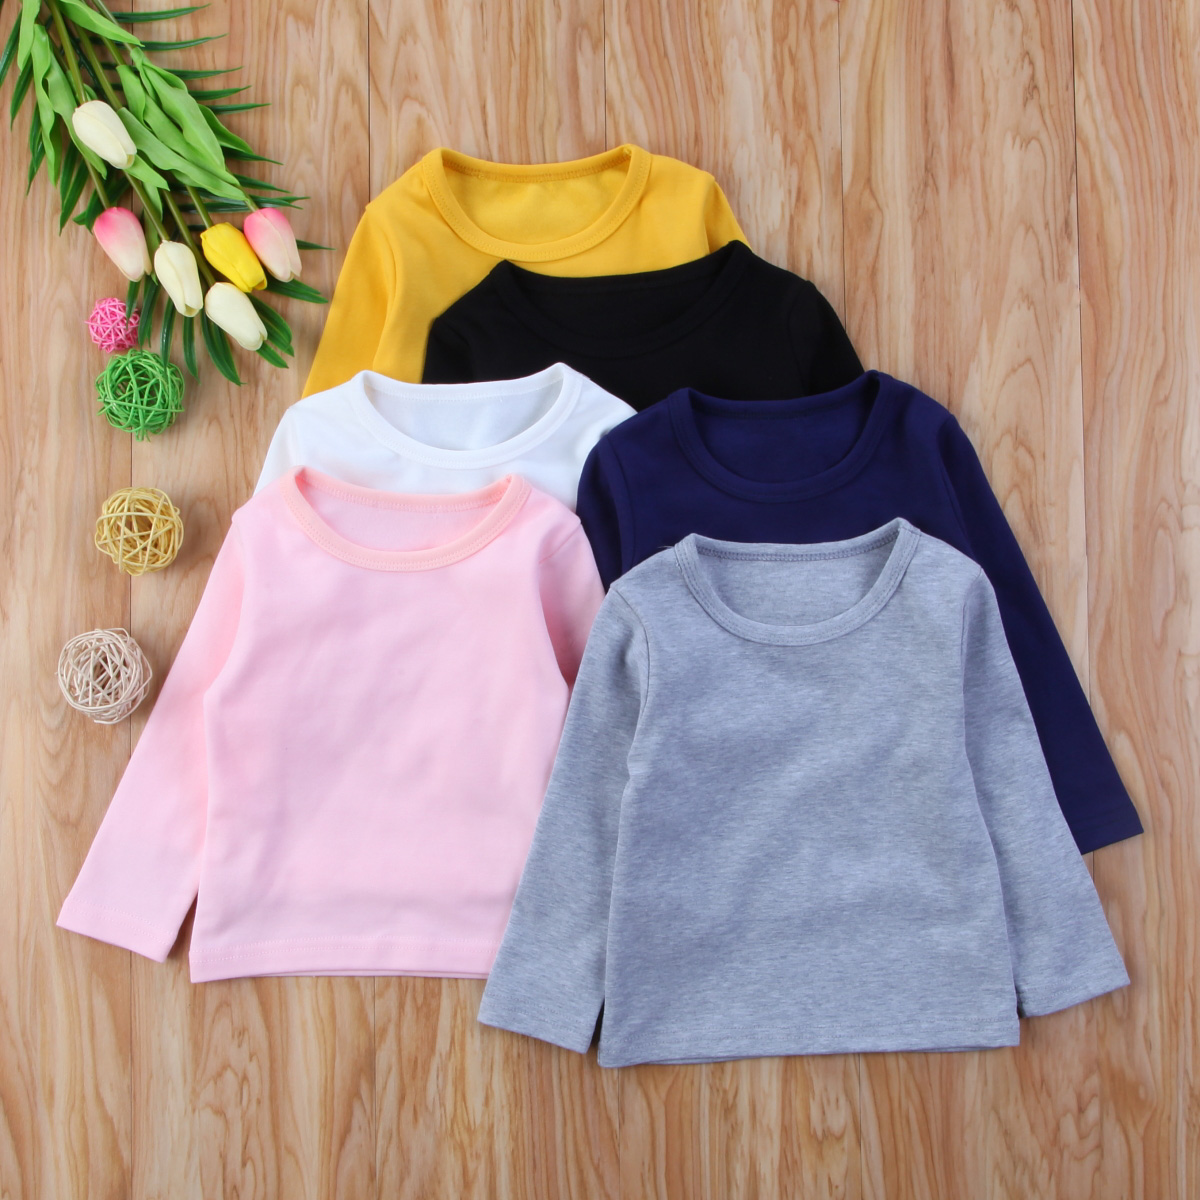 Toddler Infant Kids Baby Boys Girls Cotton Warm Clothes Tops Outwears 1